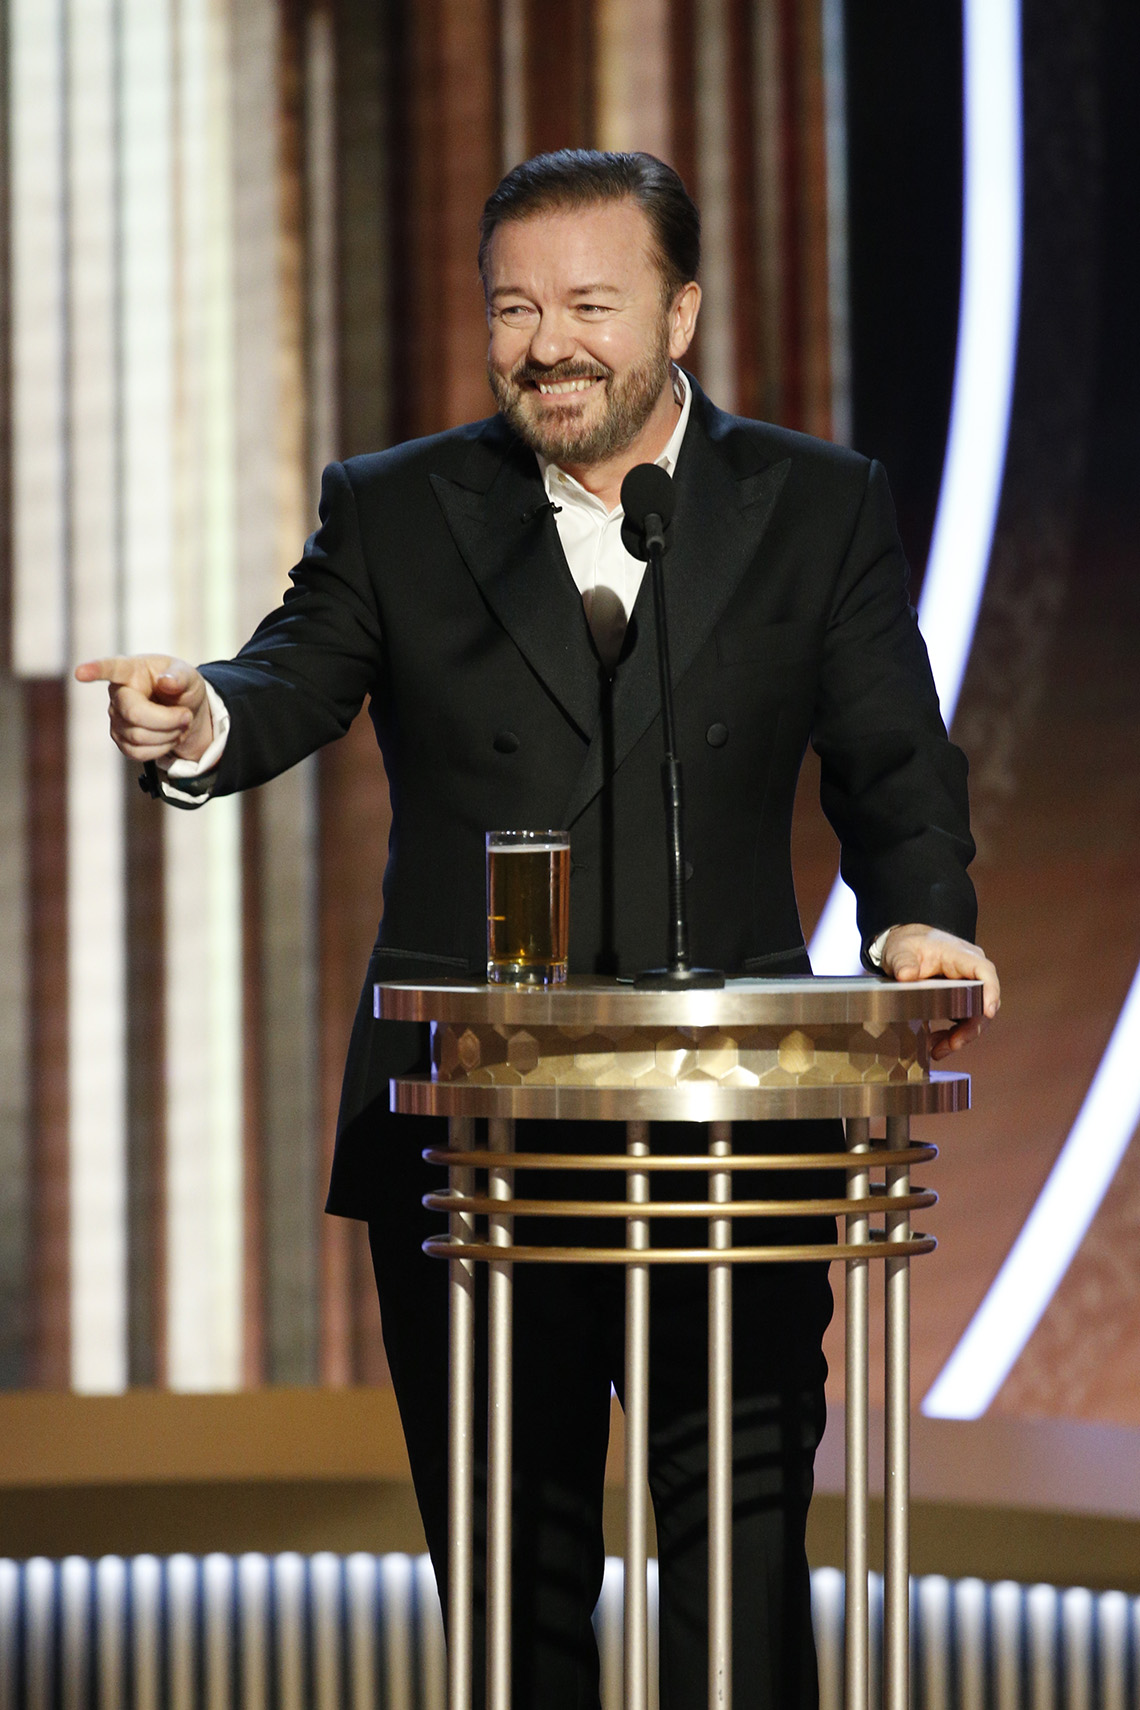 Ricky Gervais onstage hosting the 77th Annual Golden Globe Awards